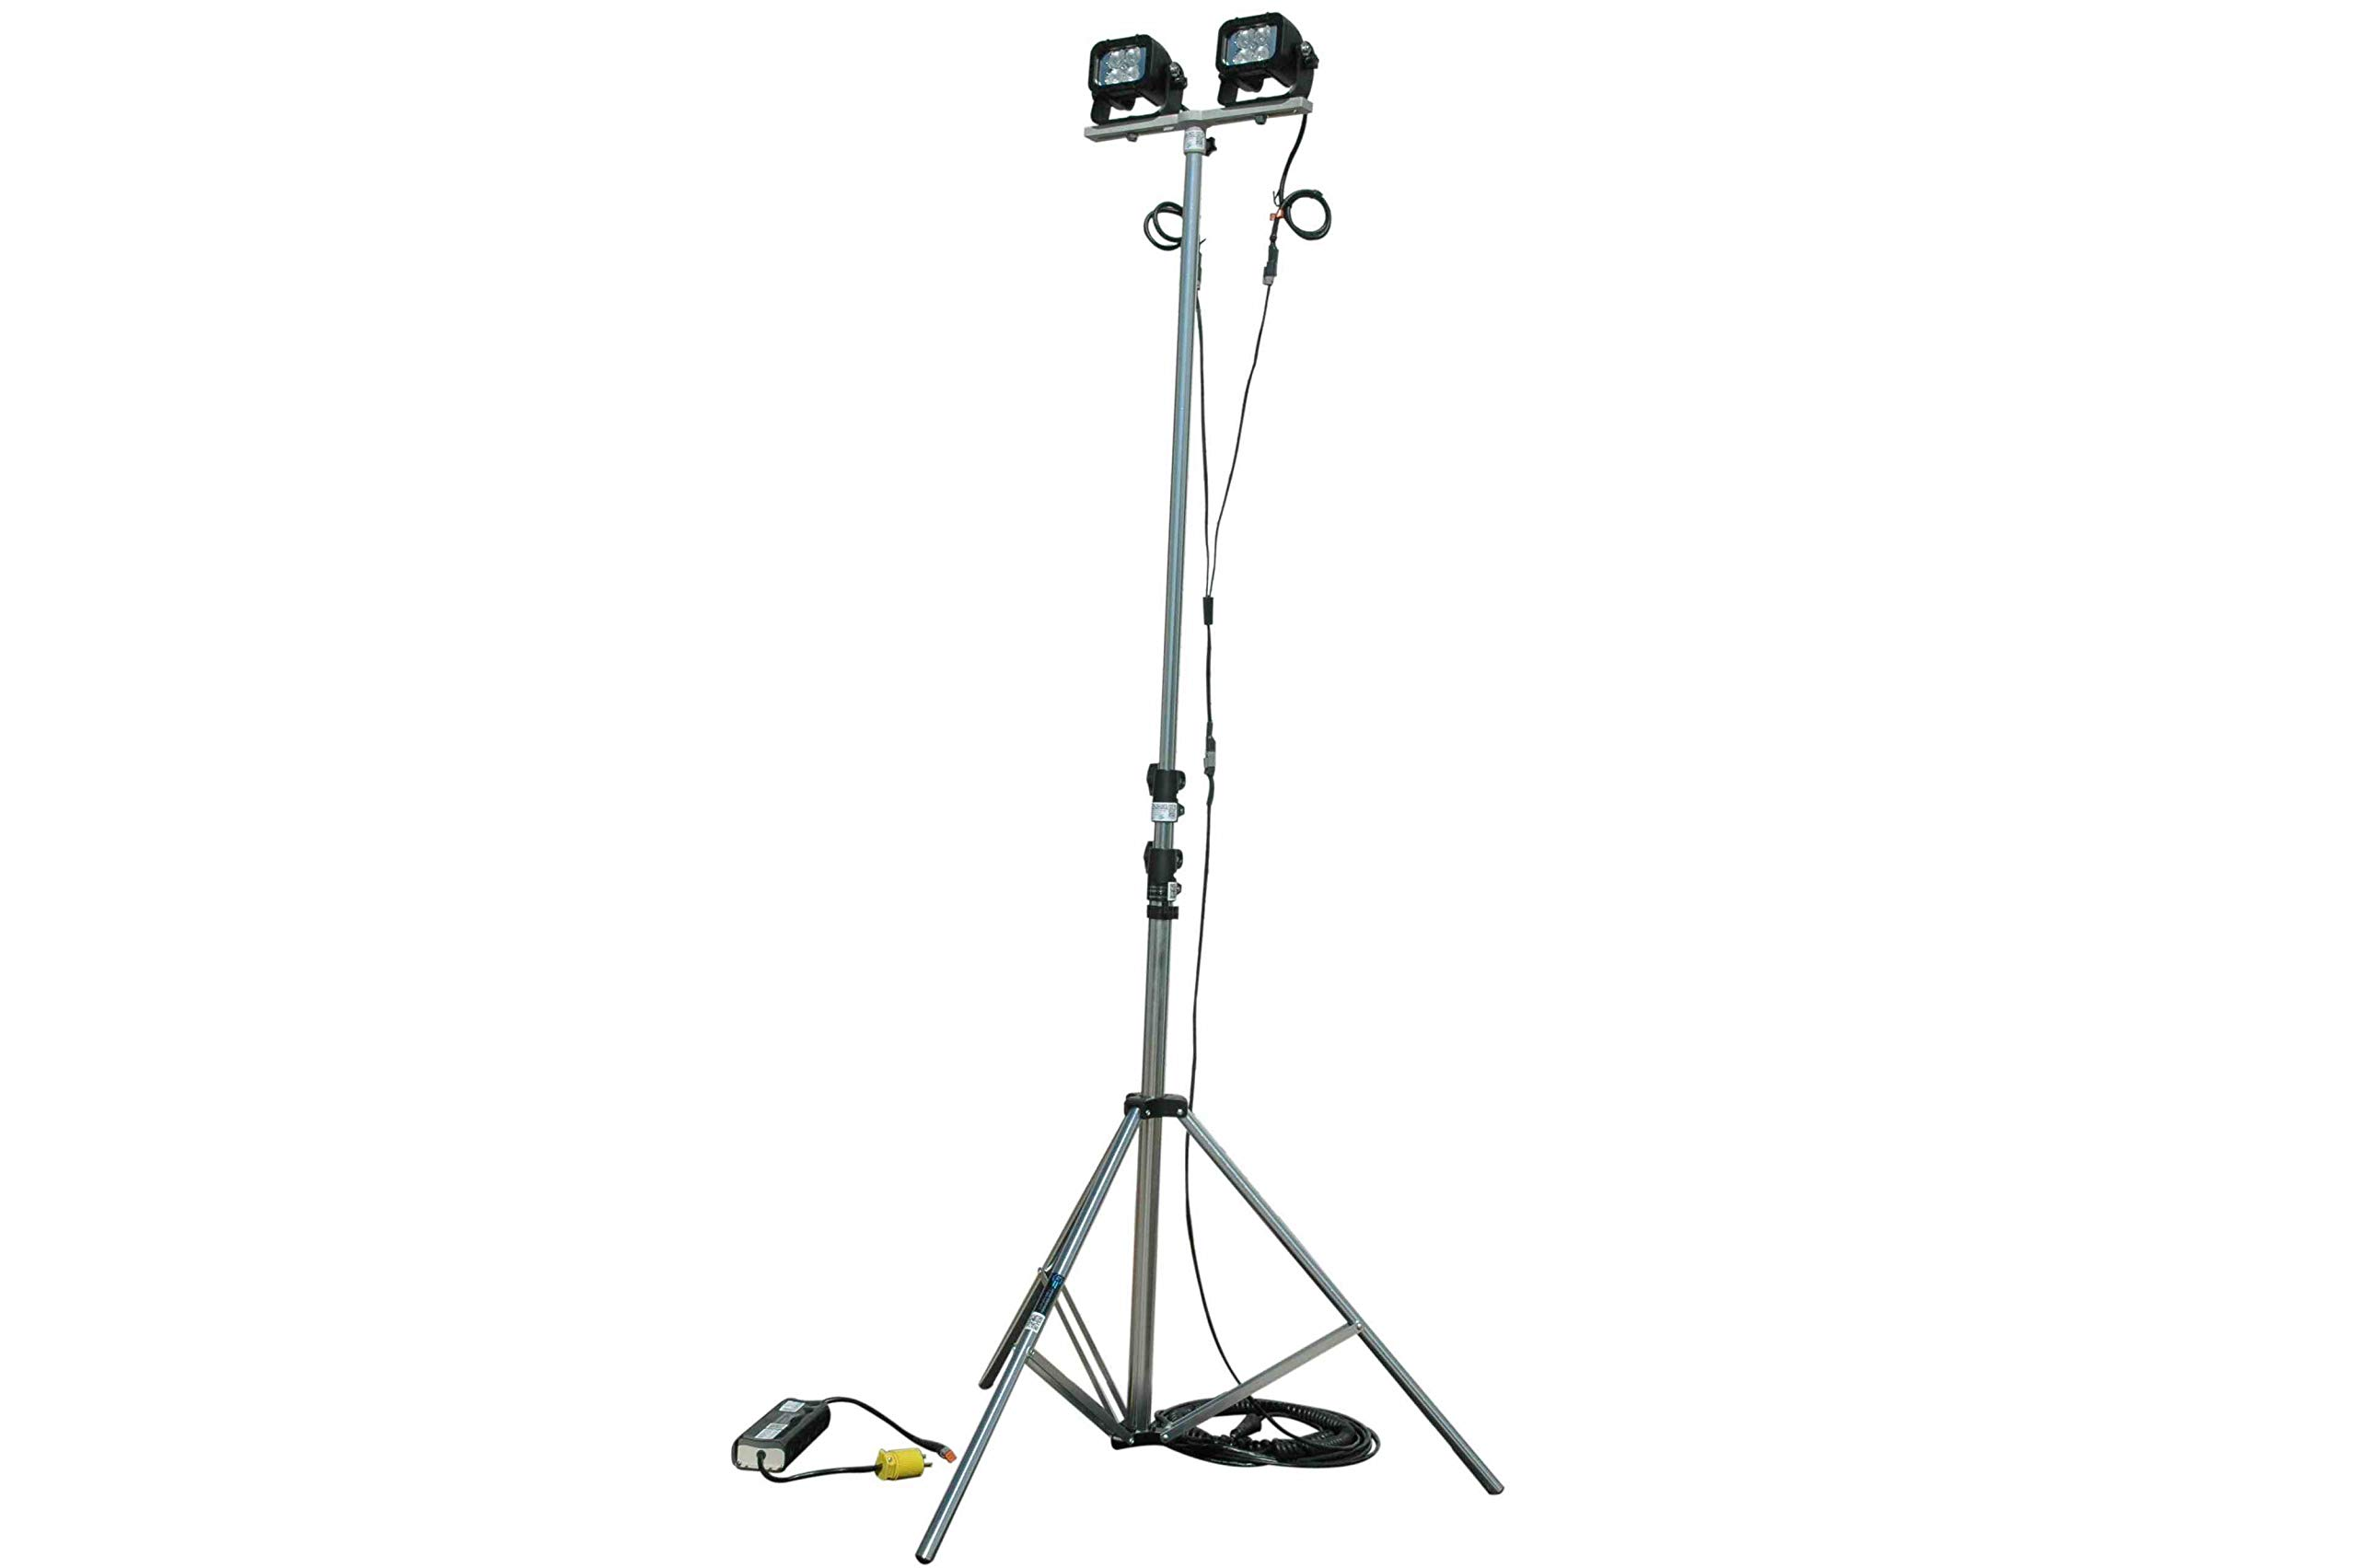 24W Portable LED Telescoping Light Tower - Extends 3.5' to 10' - 15ft Coil Cord - 1440 Total Lumens